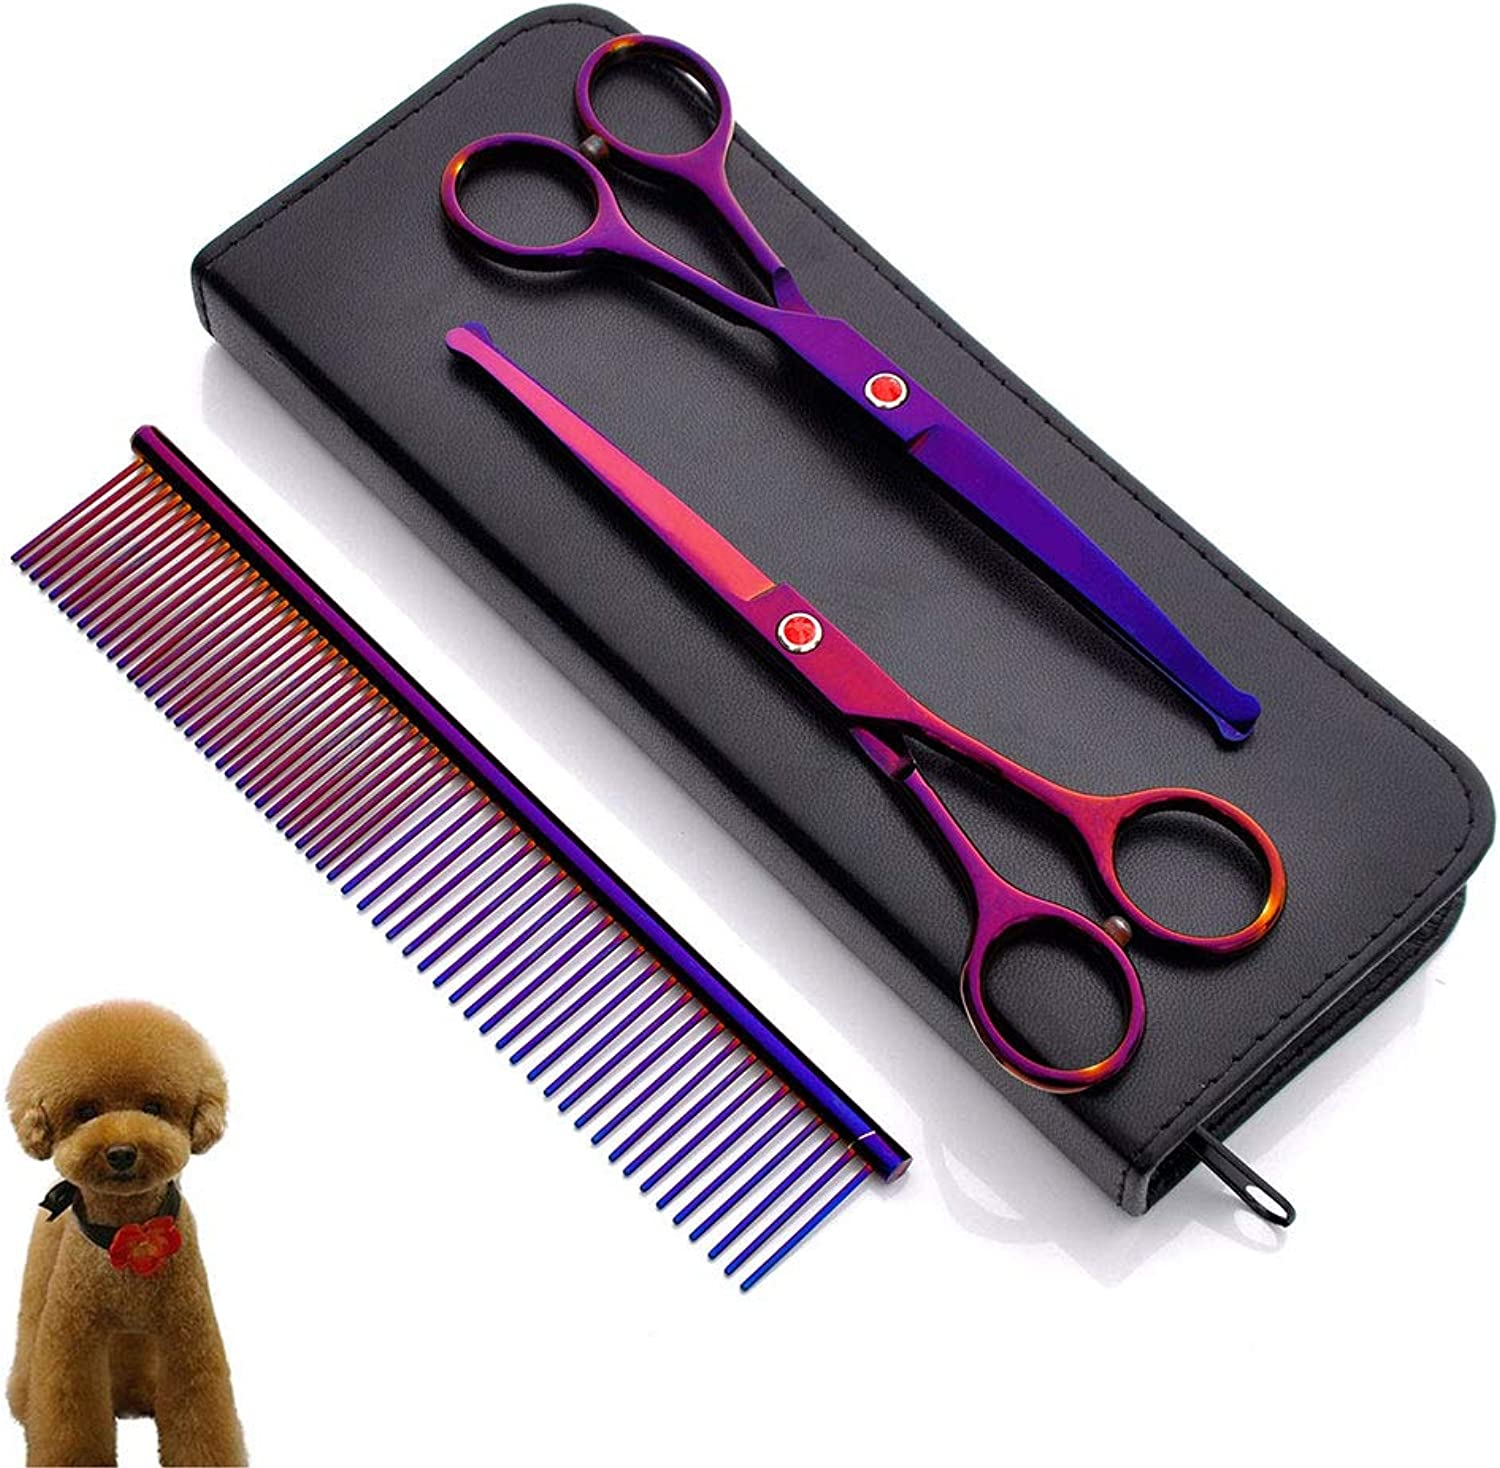 Pet Scissors, Safety Round Head Heavy Duty Stainless Steel Pet Grooming Scissors Set Cat Dog Grooming Scissors Set Suitable for Pet Cat Dog Grooming